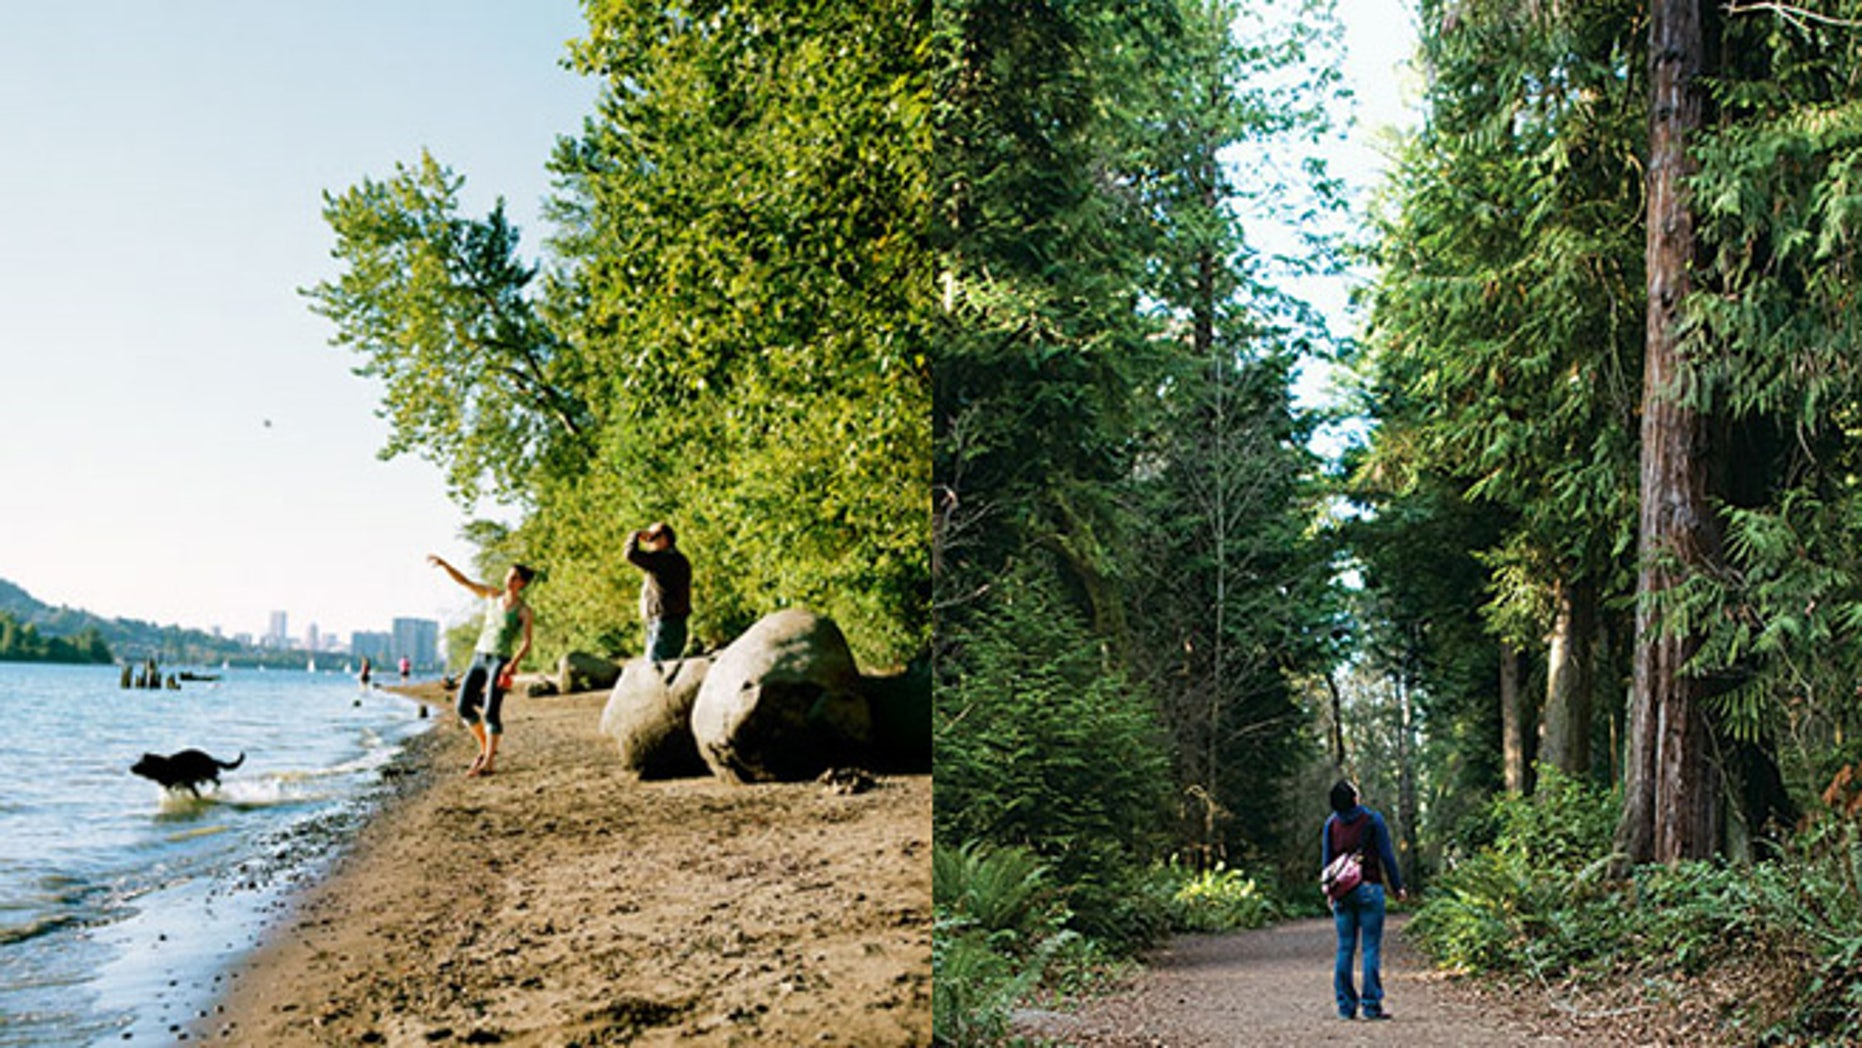 Sellwood Riverfront Park in Portland, Ore. (left) and Seward Park in Seattle